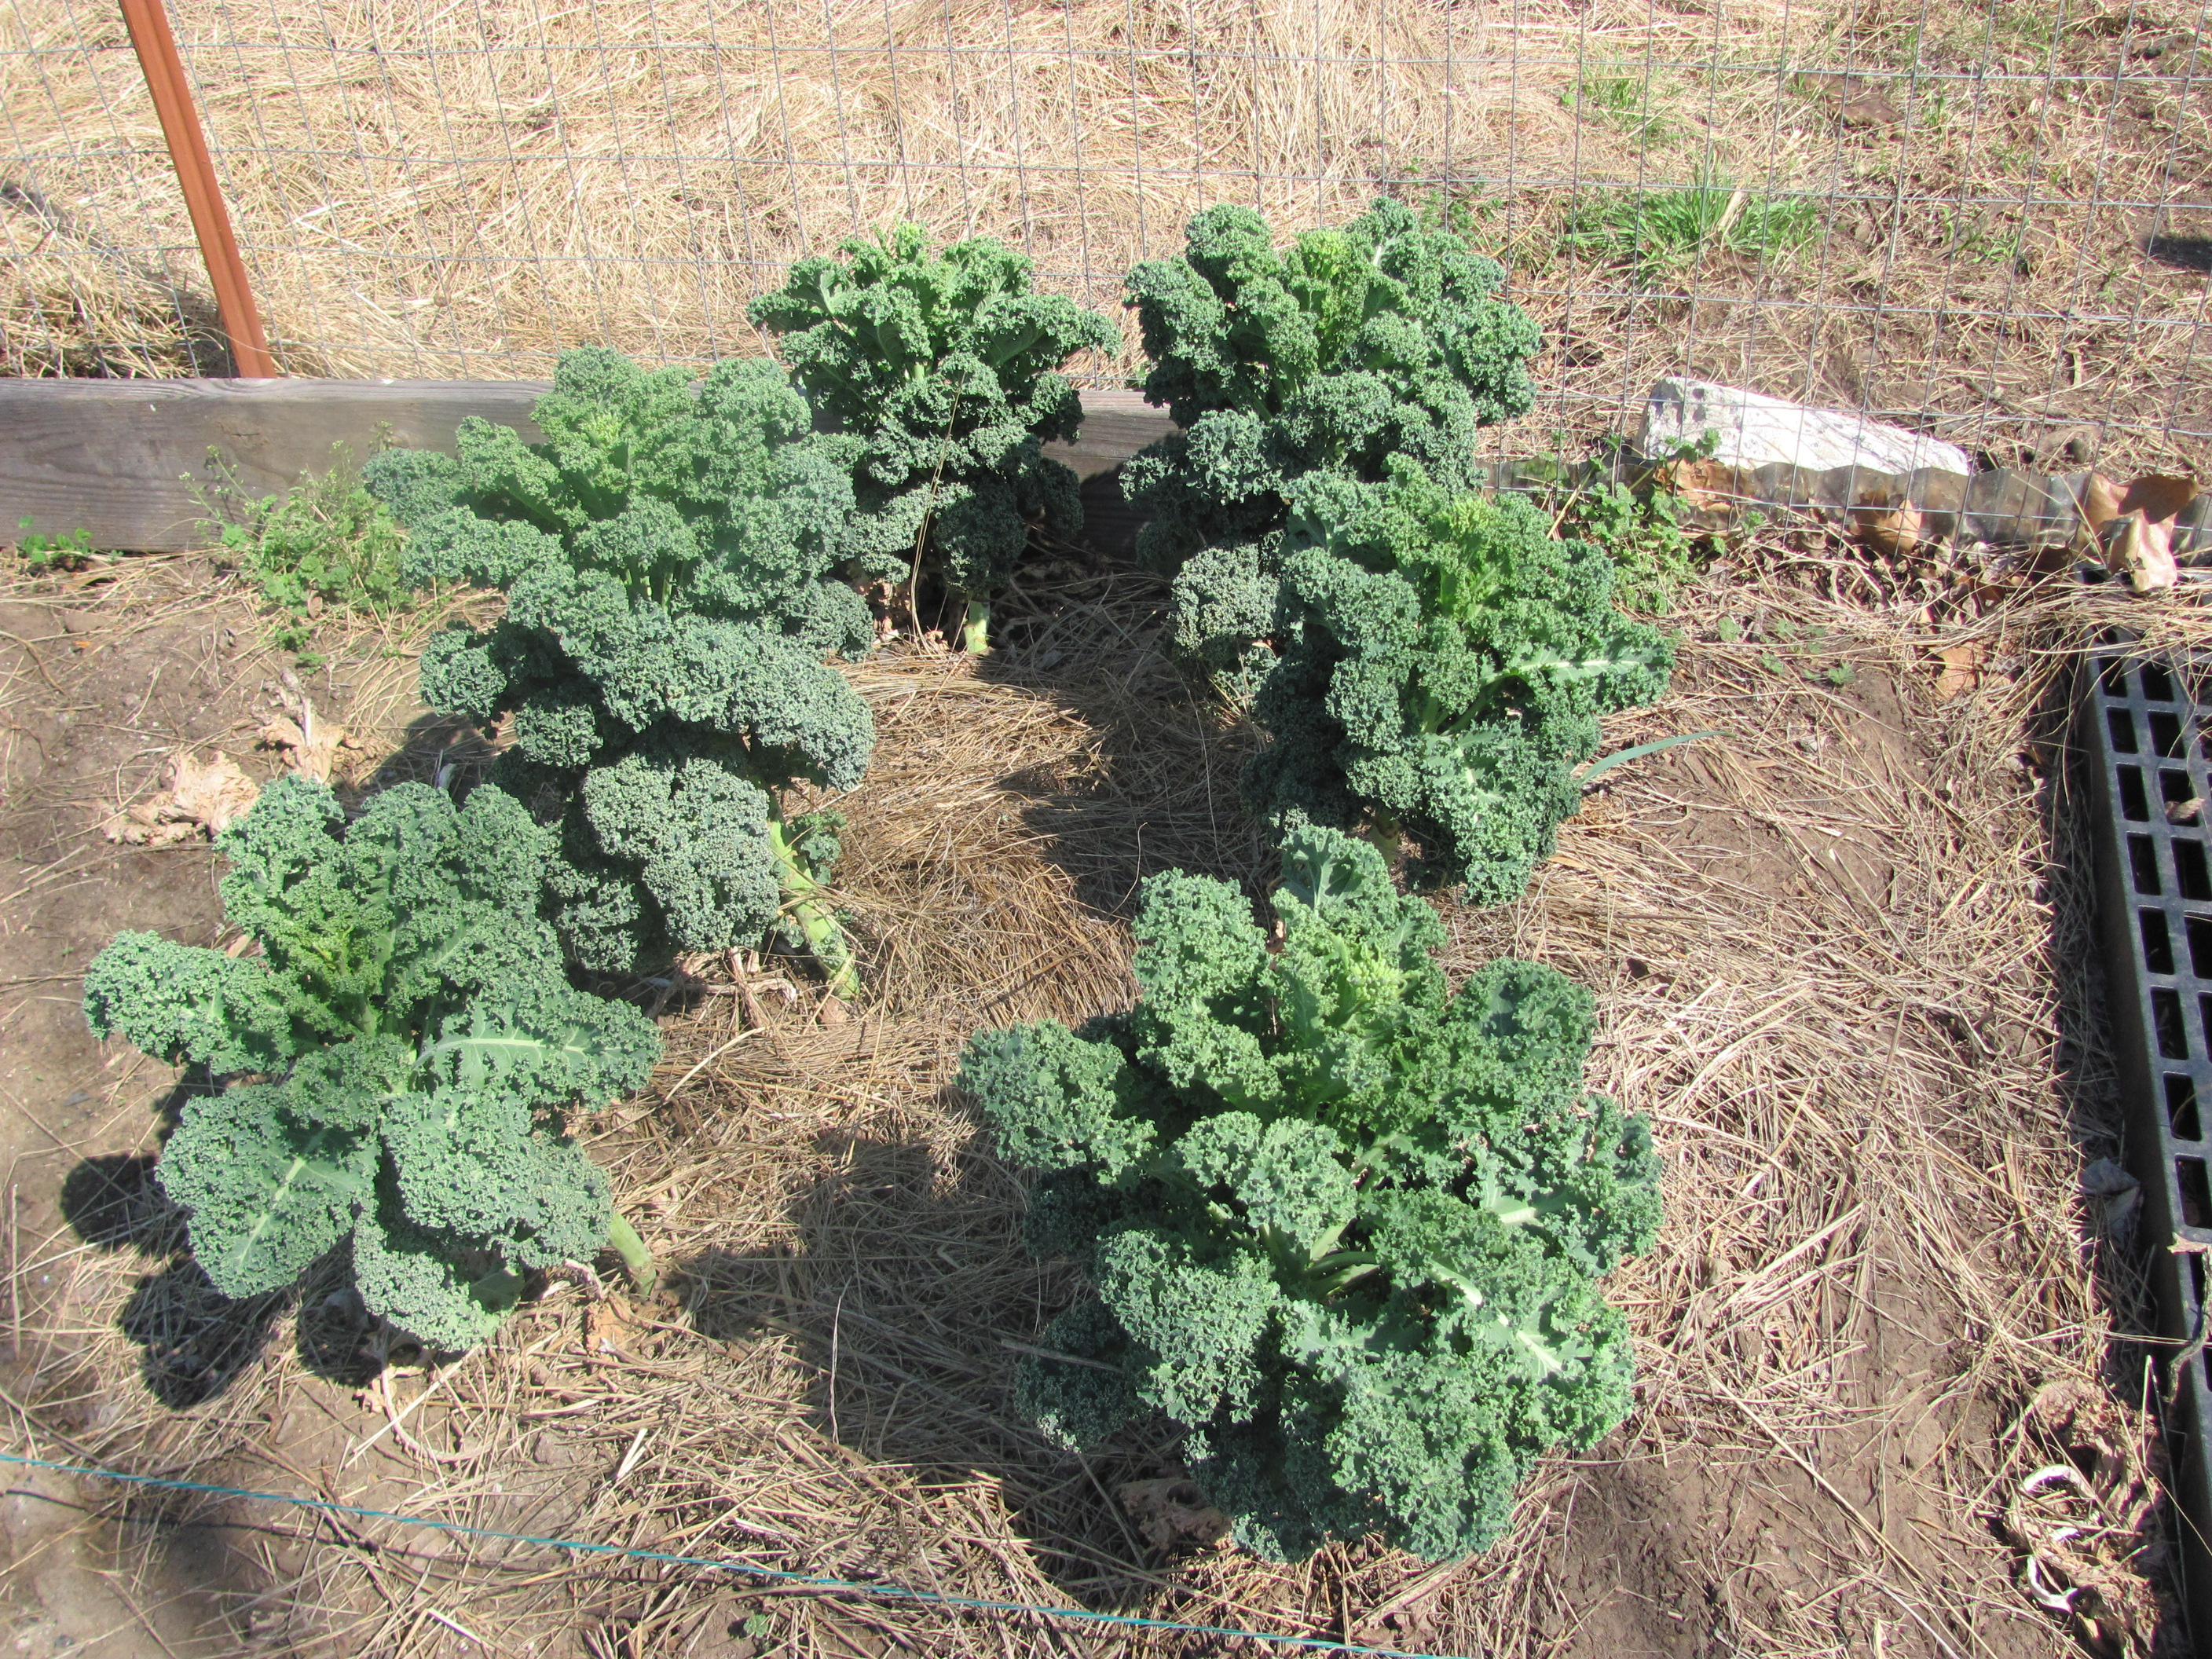 kale is a member of the cruciferous genus